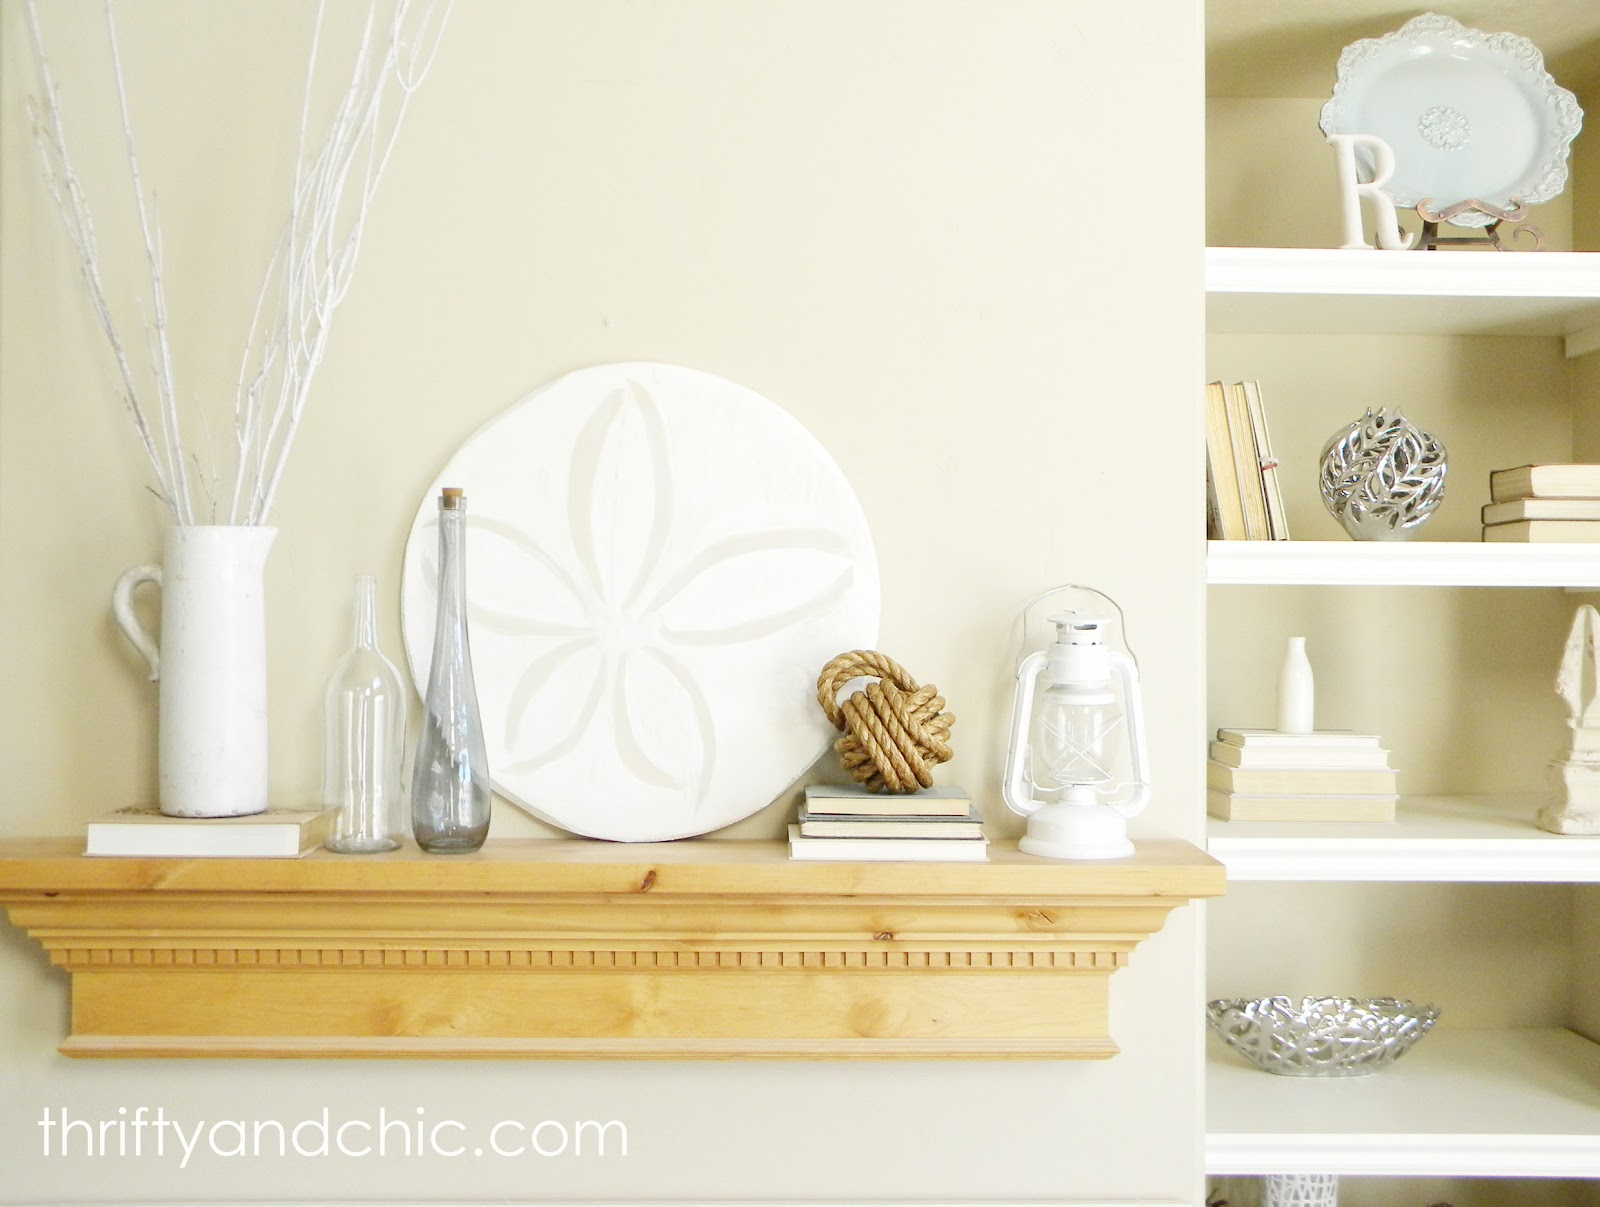 Thrifty and chic diy projects and home decor pottery barn sand dollar reviewsmspy